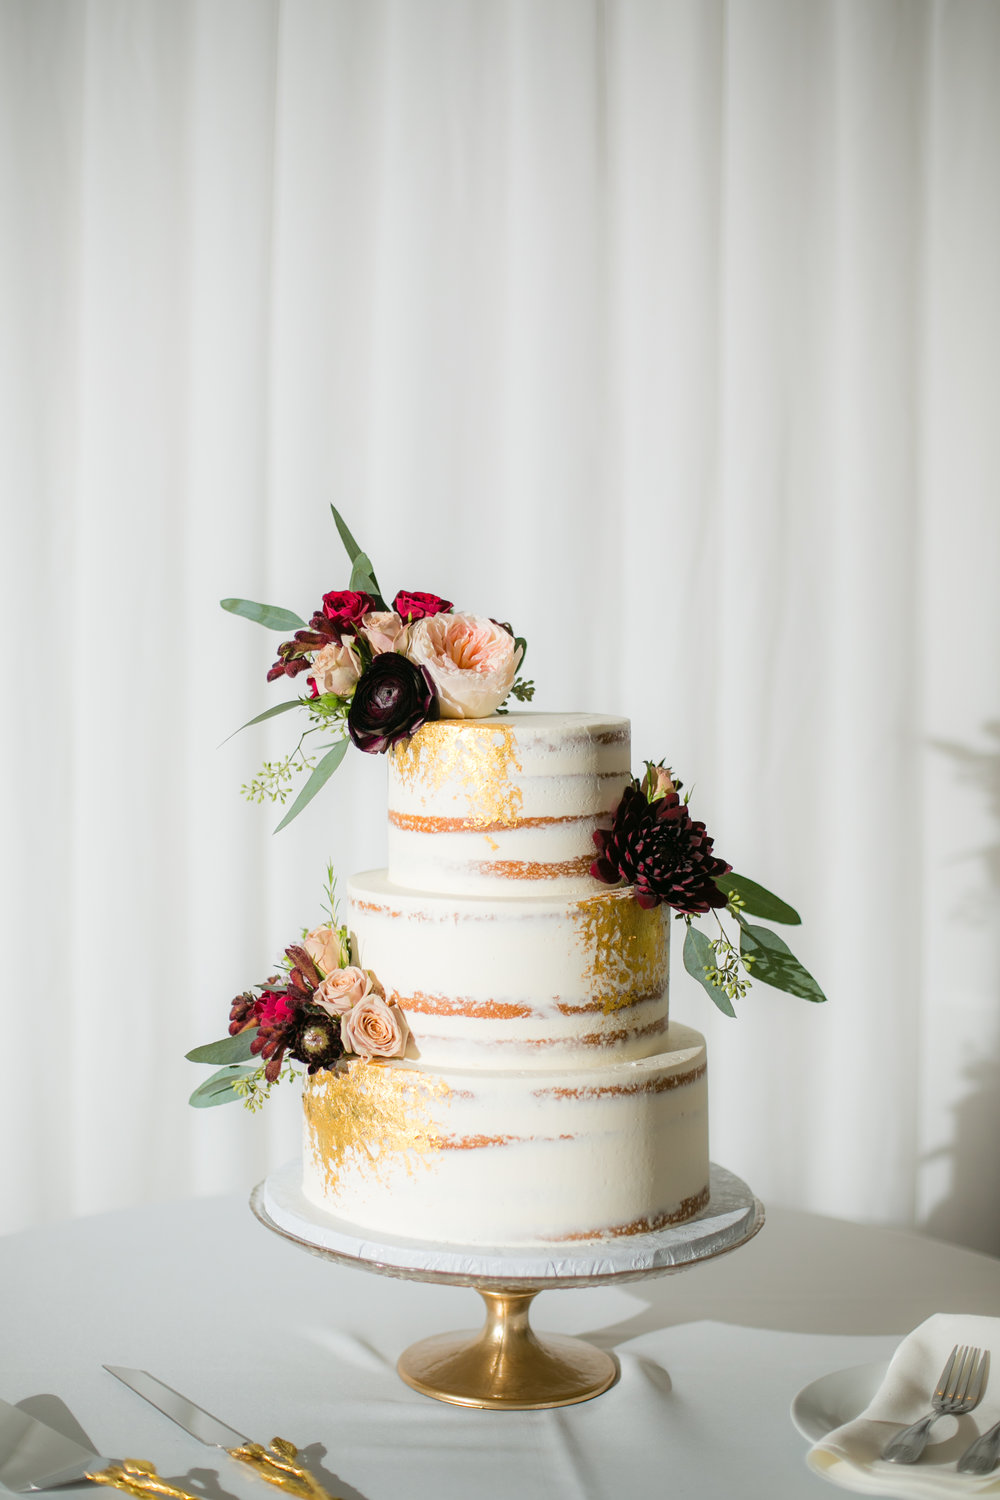 Images Of Chocolate Cakes Wedding